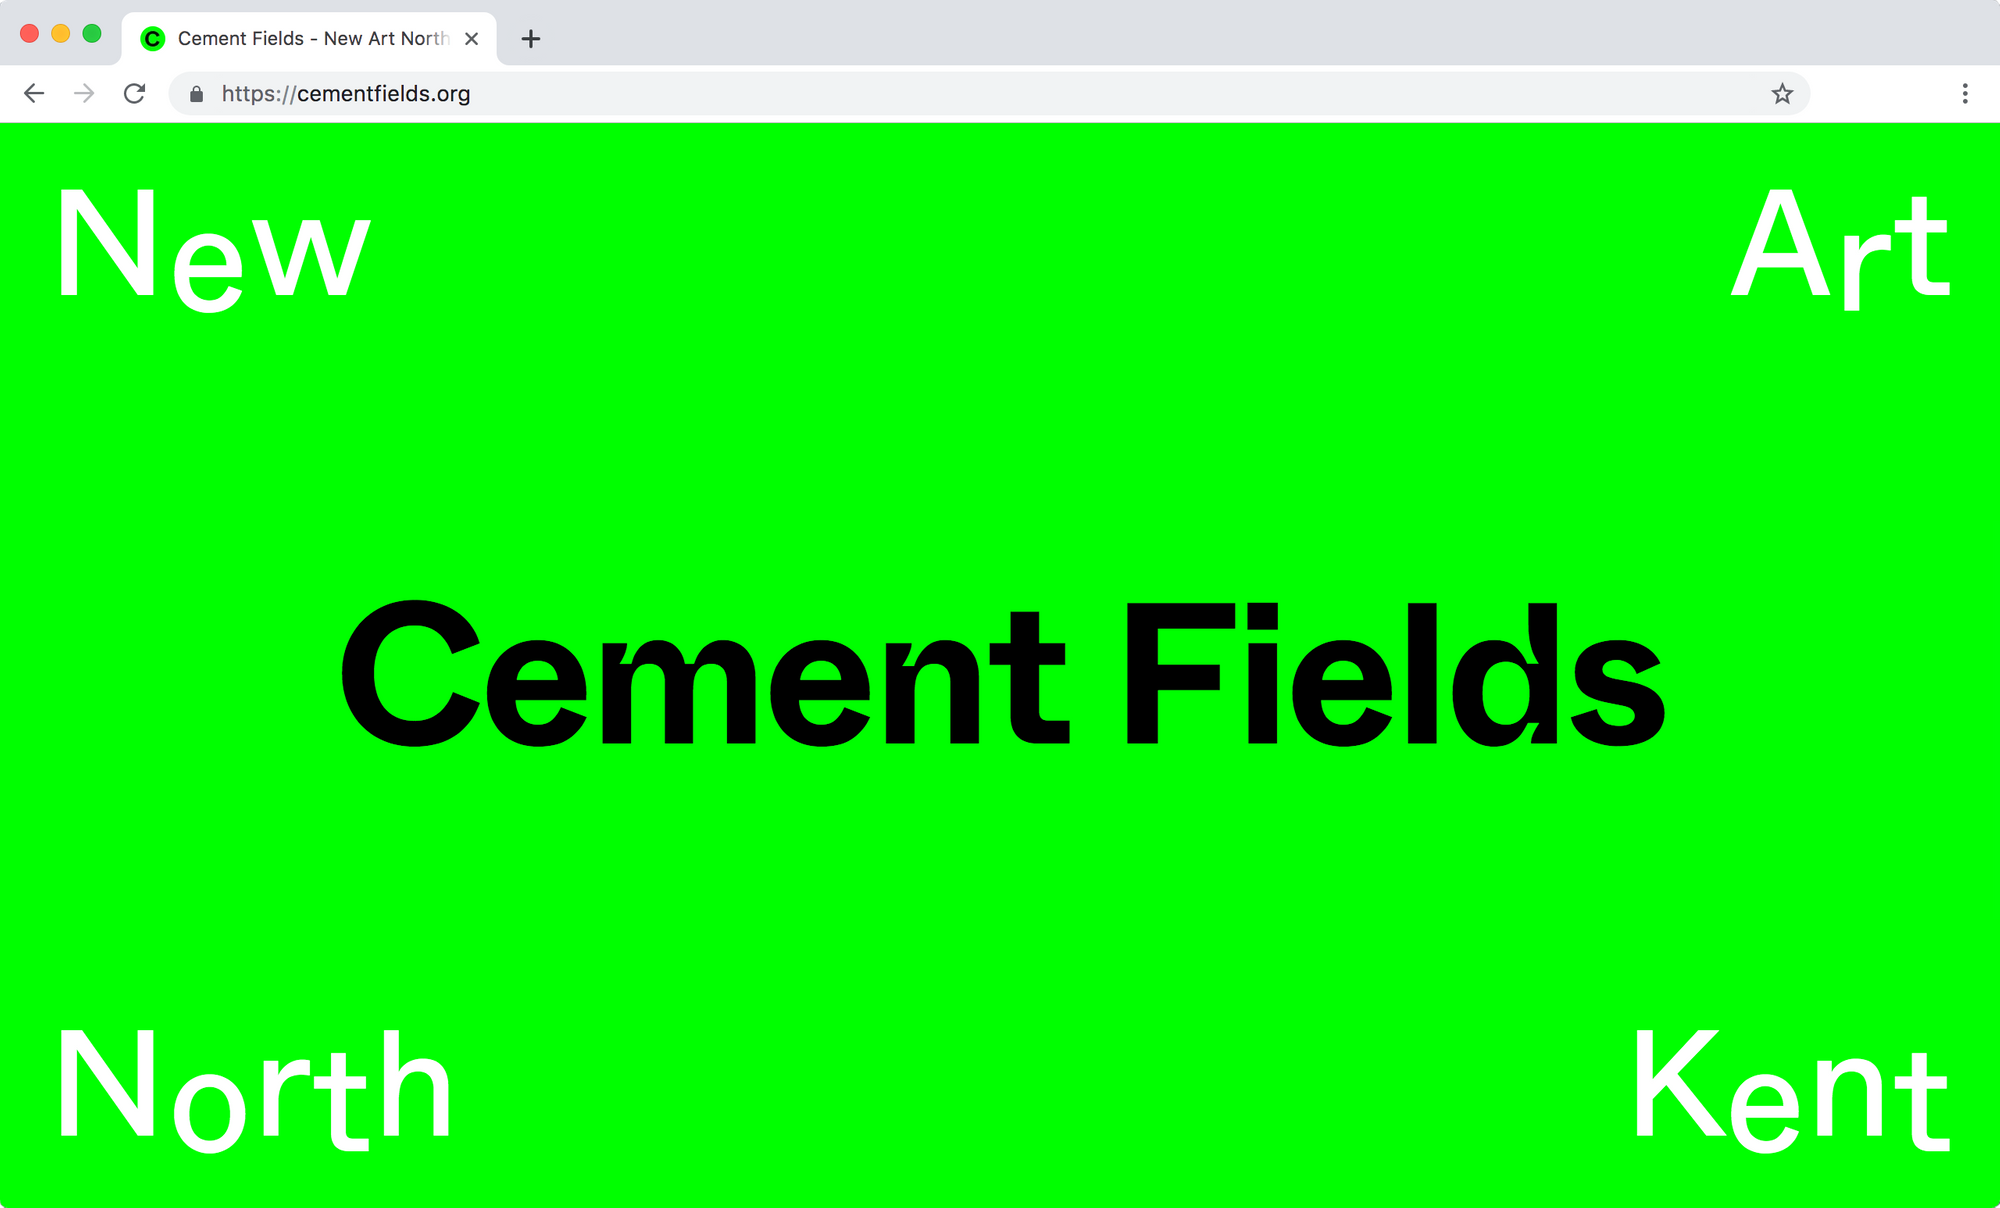 A screenshot of the loading page for the Cement Fields website. A RGB green background with Cement Fields in black text. In each corner of the page in white text, the words New Art North Kent.